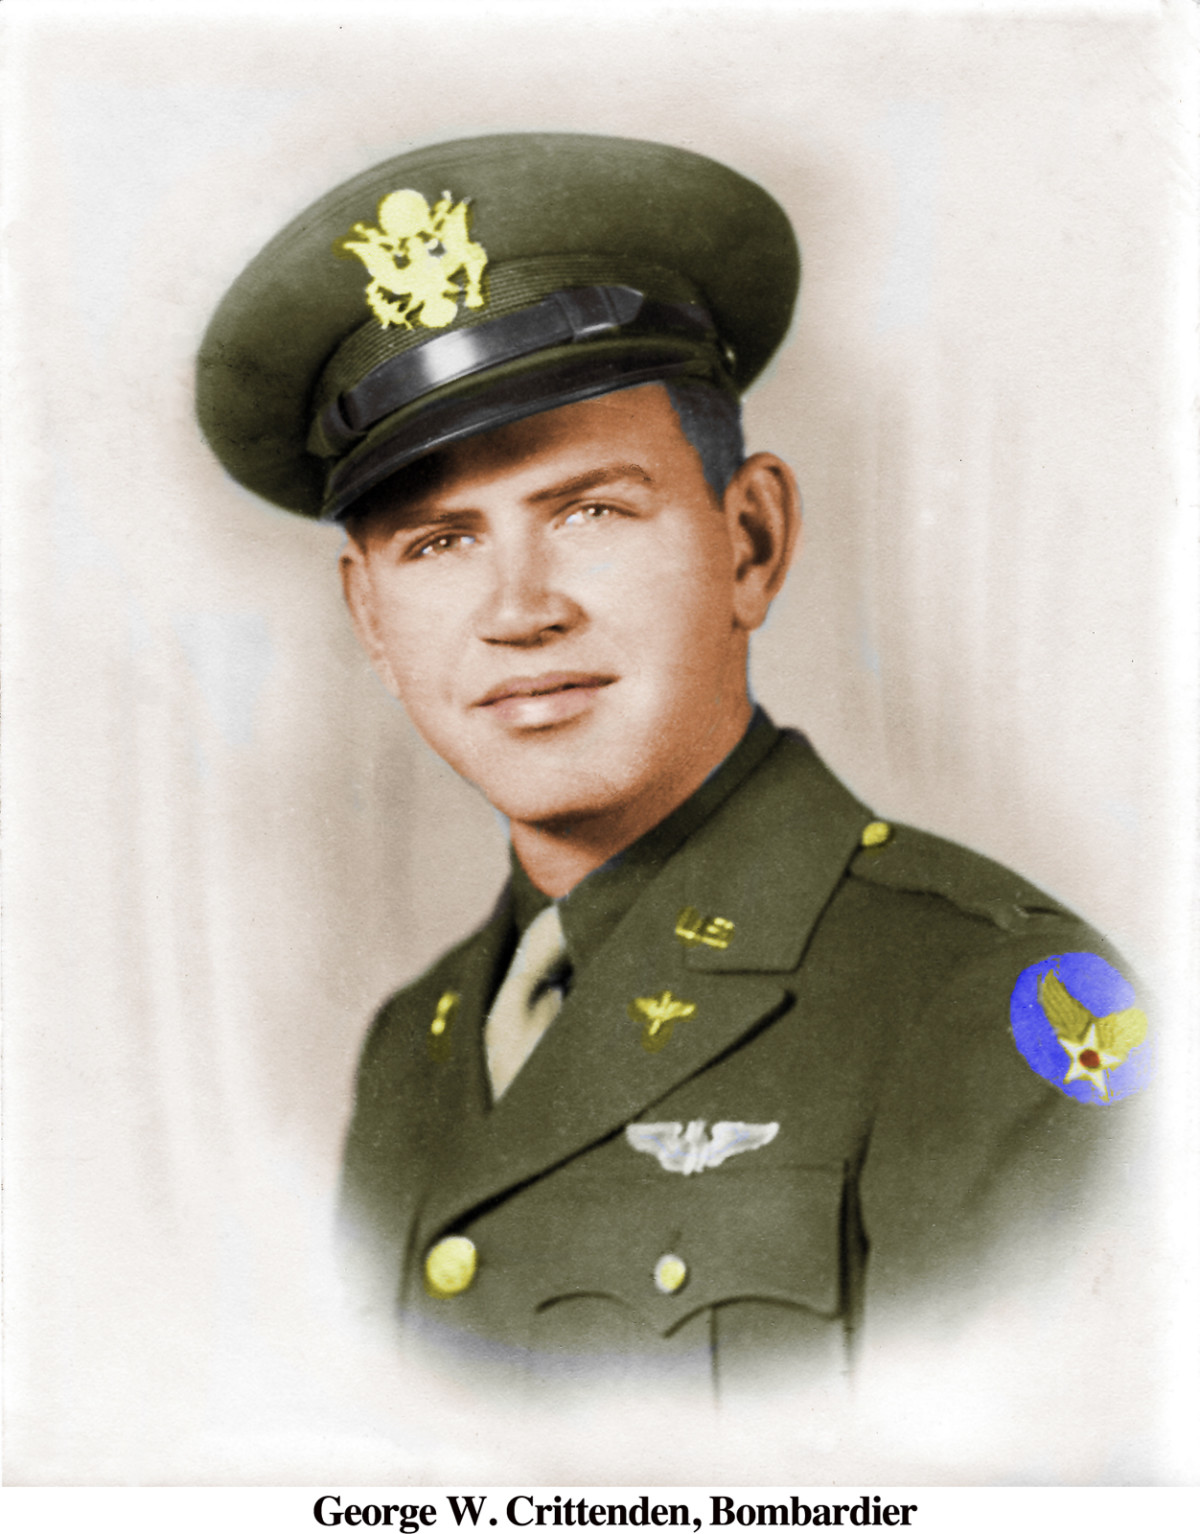 George W. Crittenden, Bombardier colorized by Carrozza